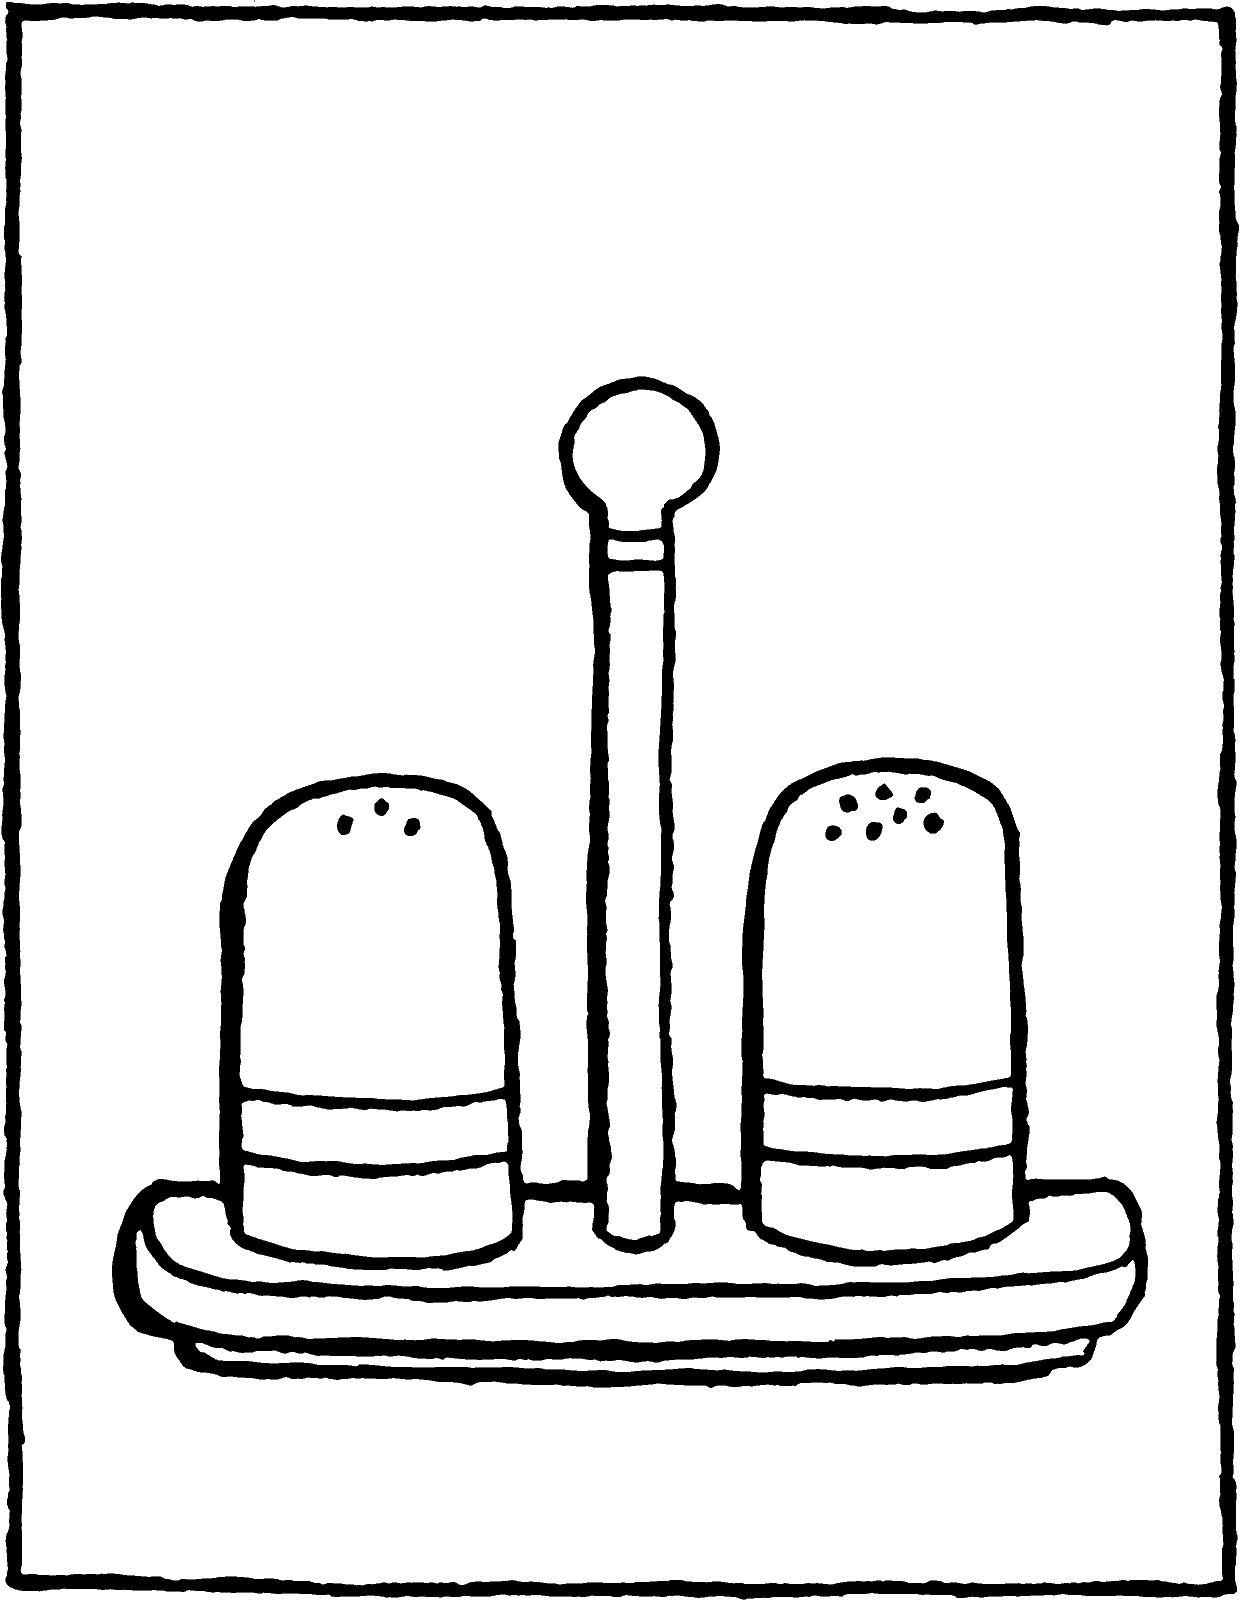 salt and pepper pots colouring page drawing picture 01V